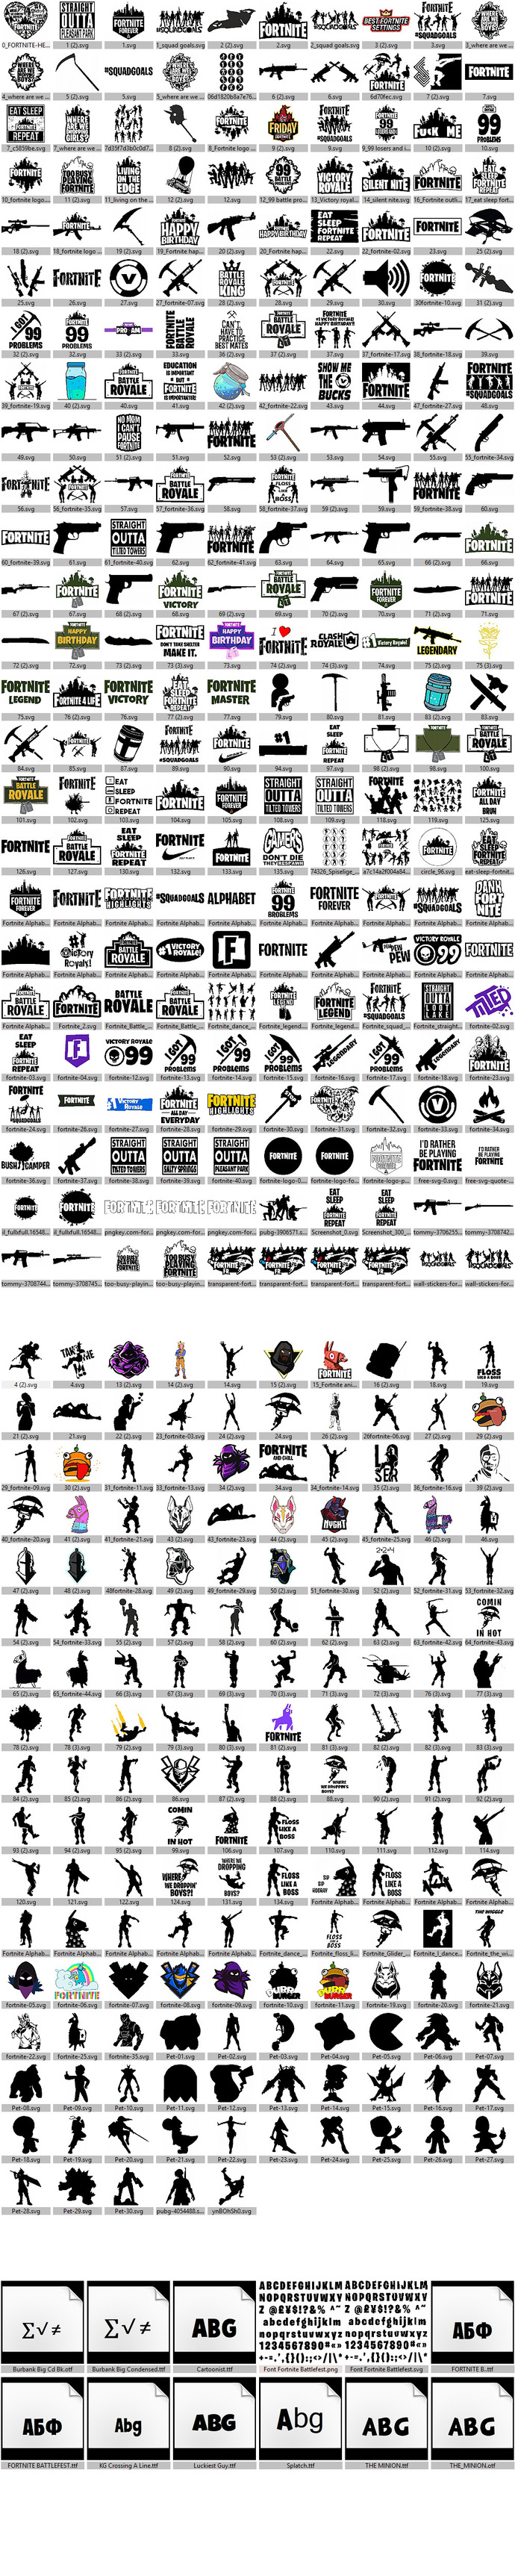 Fortnite Clipart - Creativity Images Illustrations